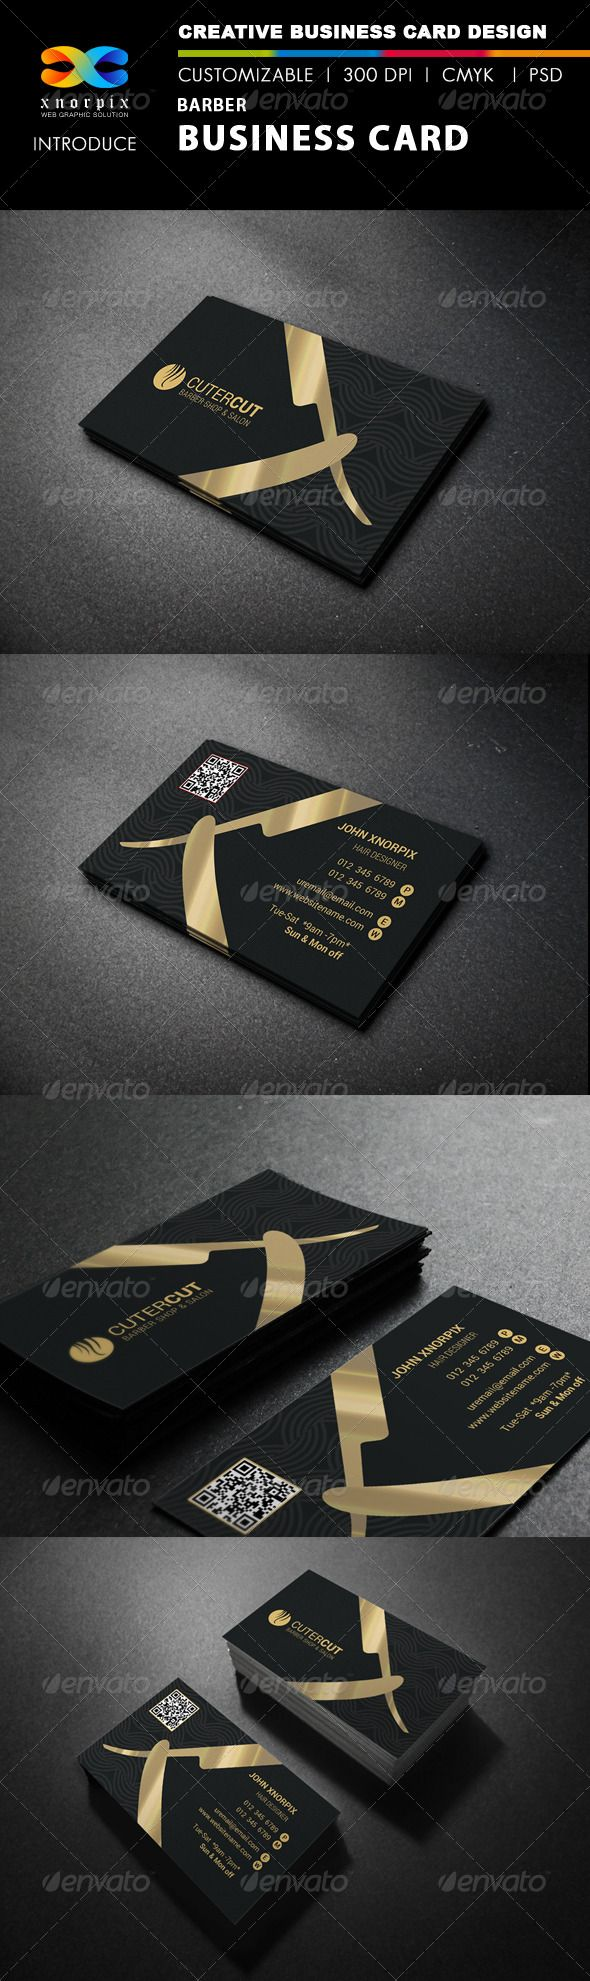 Barber business card business cards creative and corporate barber business card wajeb Image collections